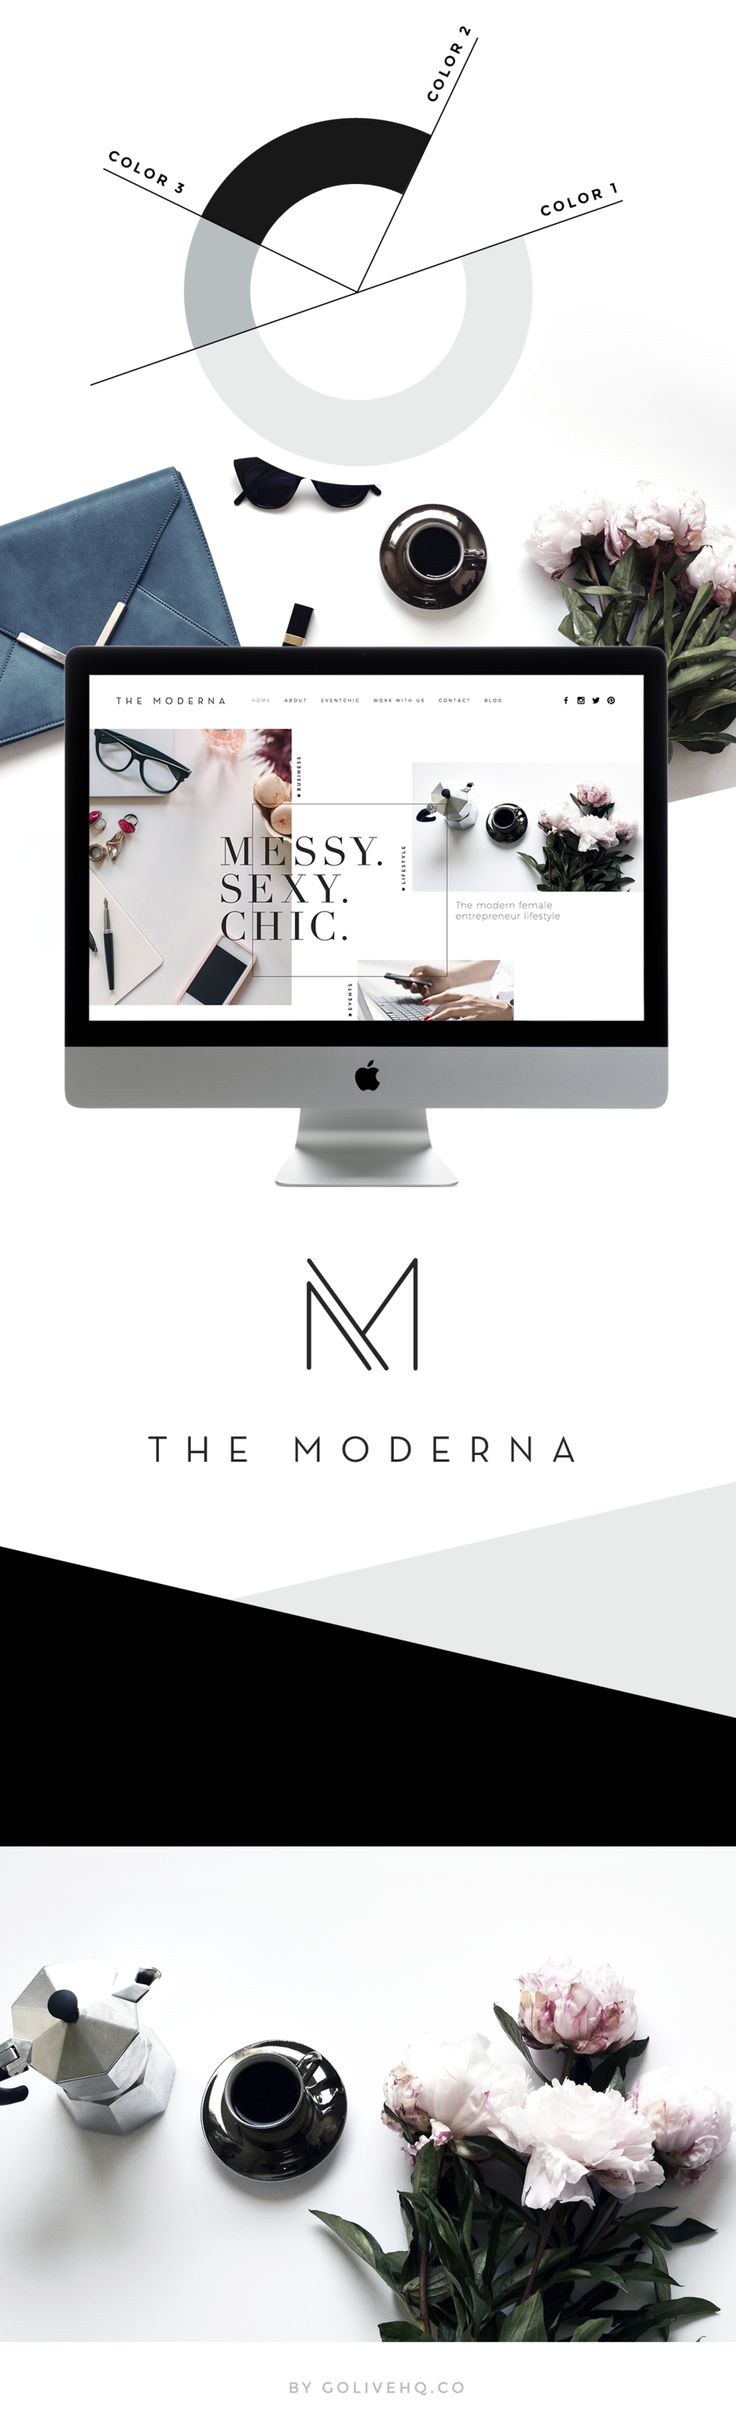 modern squarespace website design | | by GOLIVEHQ.CO It just feels modern to me.